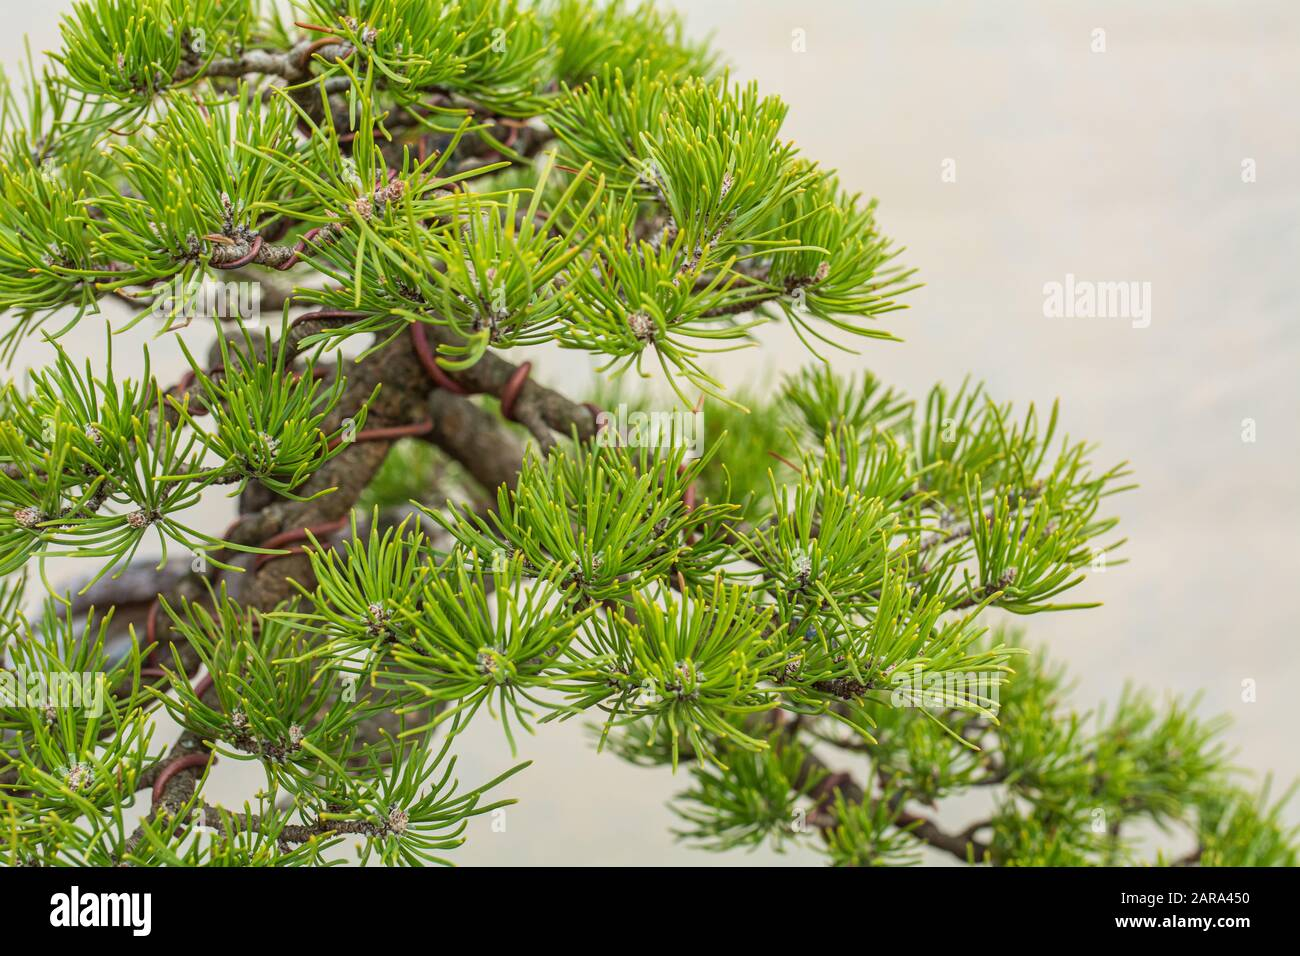 A Small Bonsai Tree Bonsai Pinus Ponderosa Ponderosa Pine Stock Photo Alamy